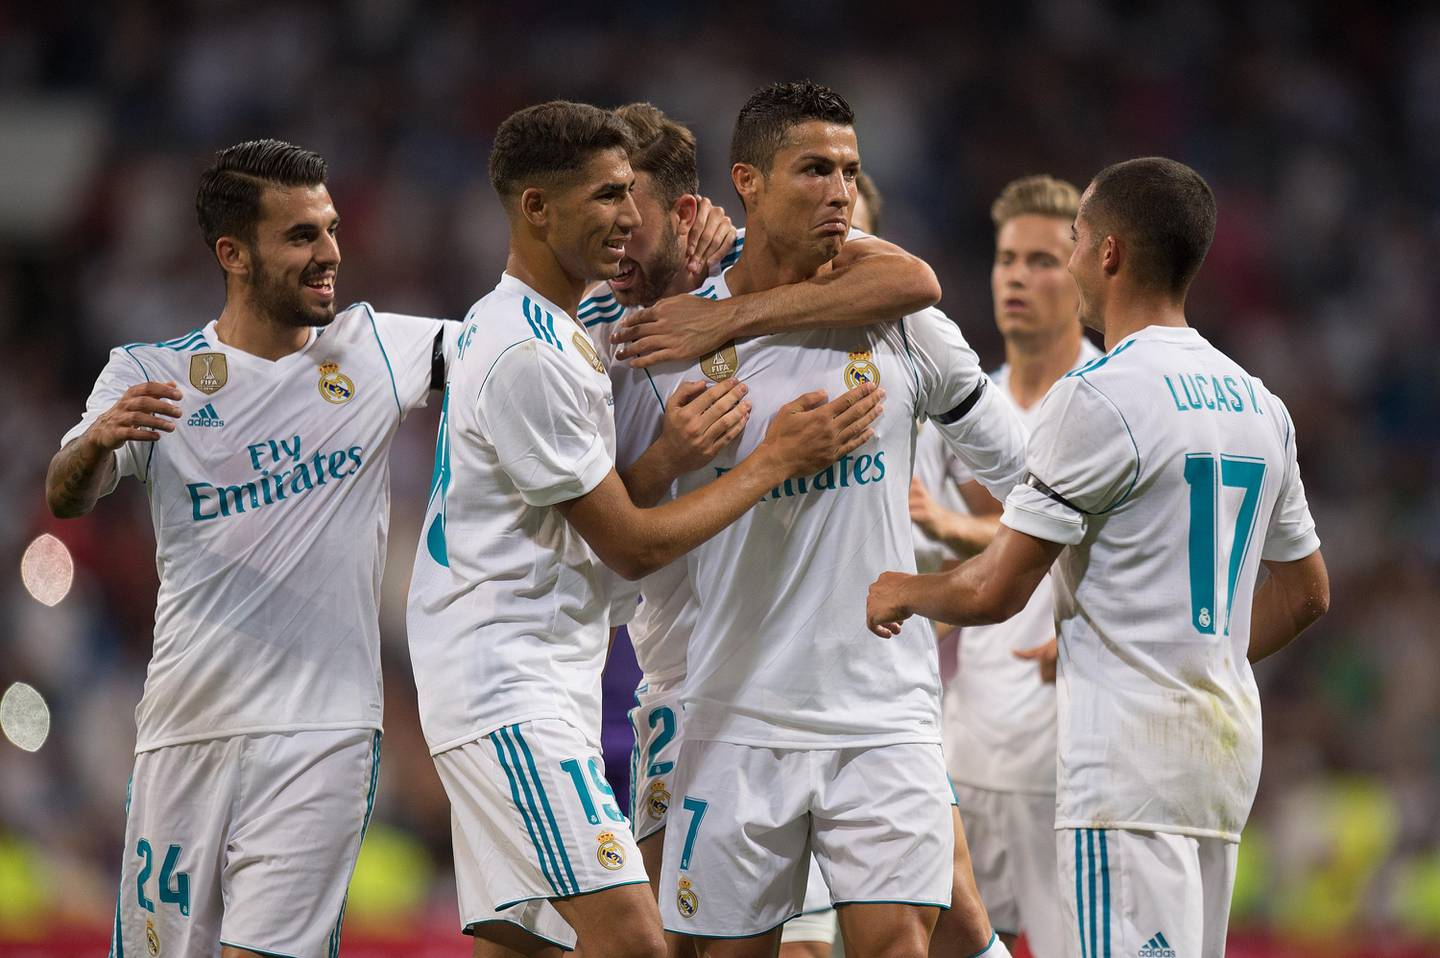 MADRID, SPAIN - AUGUST 23: Cristiano Ronaldo of Real Madrid CF celebrates after scoring his teamÕs 2nd goalduring the Santiago Bernabeu Trophy match between Real Madrid CF and ACF Fiorentina at Estadio Santiago Bernabeu on August 23, 2017 in Madrid, Spain. (Photo by Denis Doyle/Getty Images)